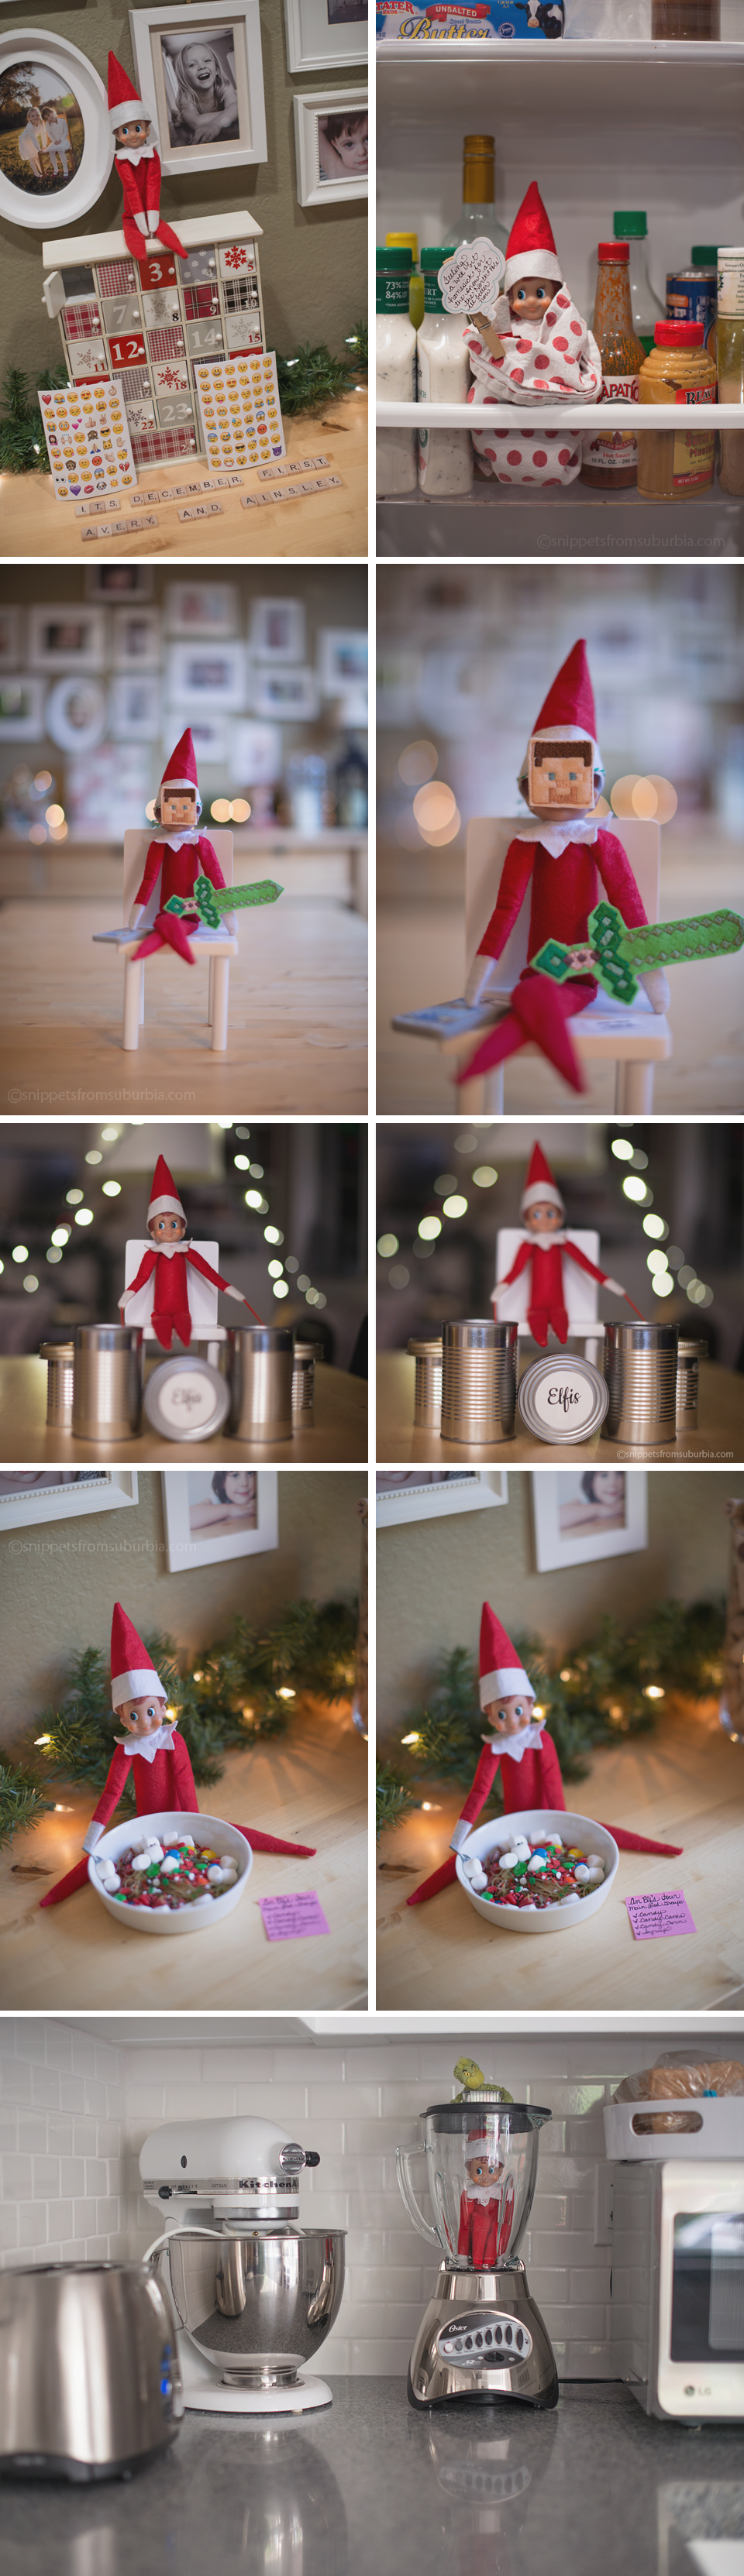 Elf on the Shelf, 2015